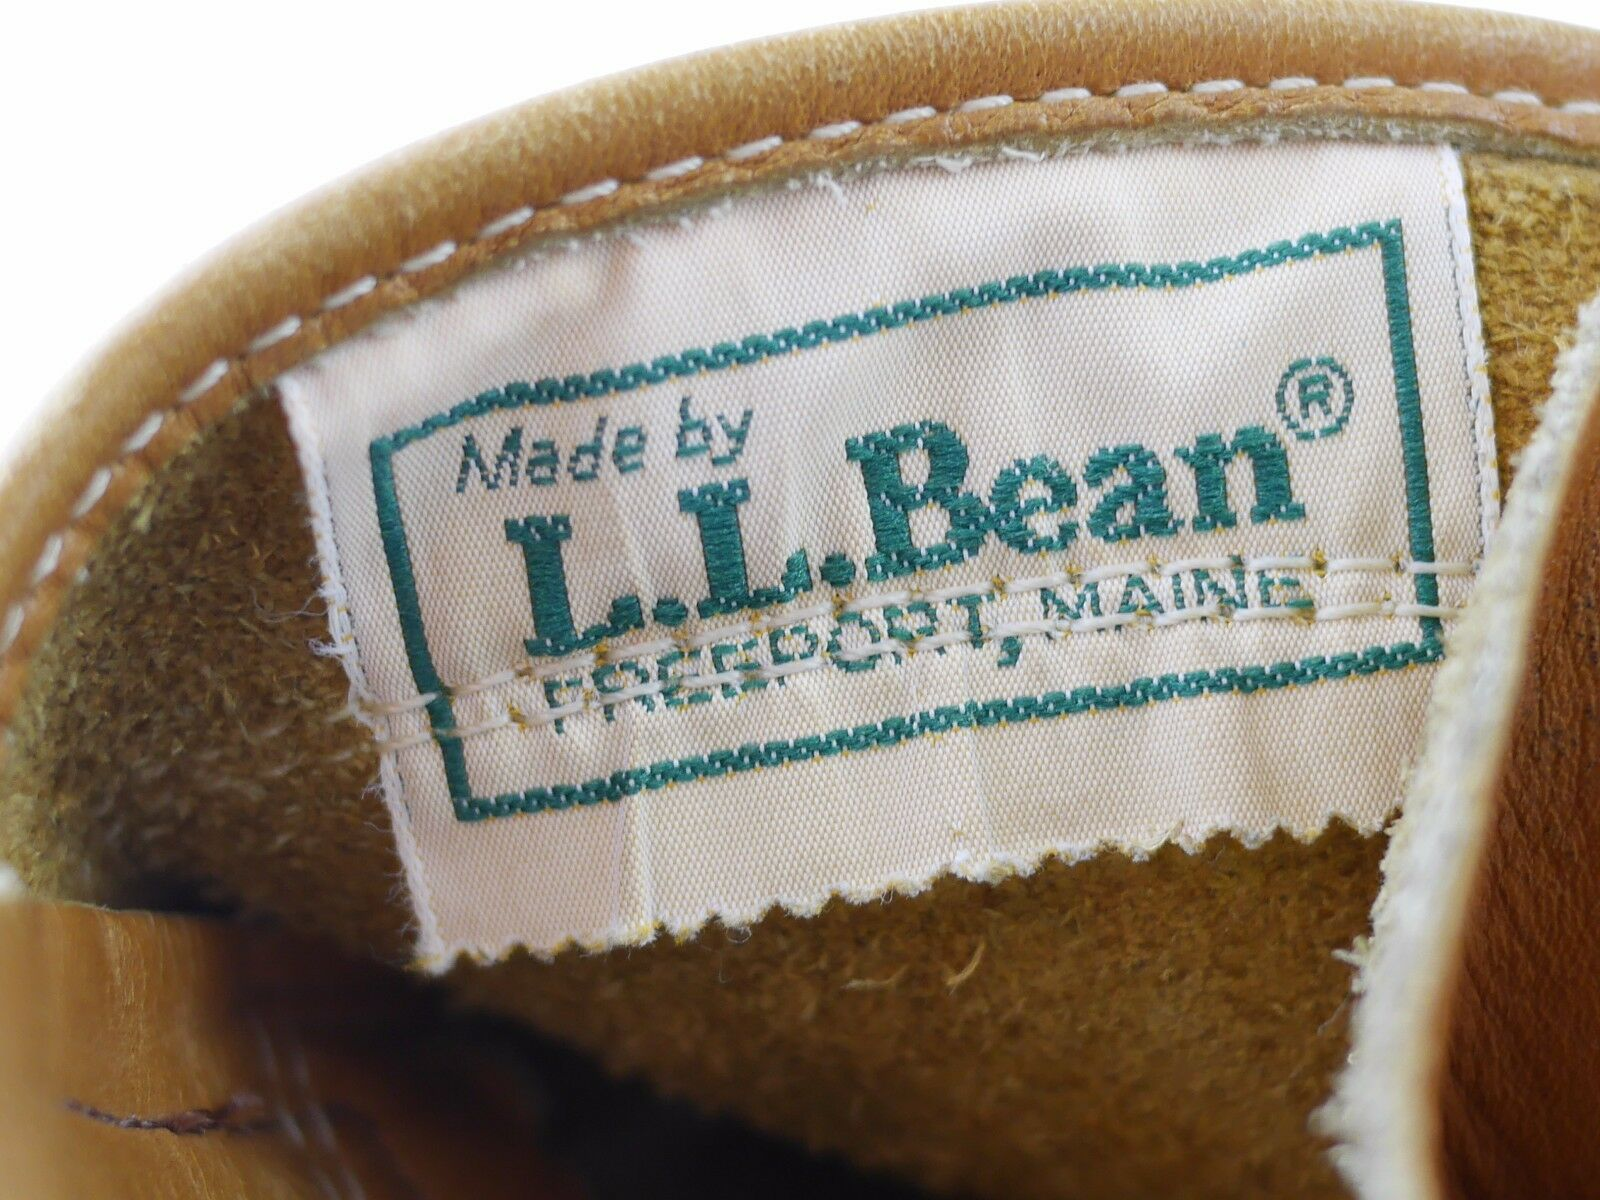 VINTAGE L.L. Bean Maine Maine Maine Hunting Boots shoes Waterproof Rubber & Leather WOMENS 8 a55ad5